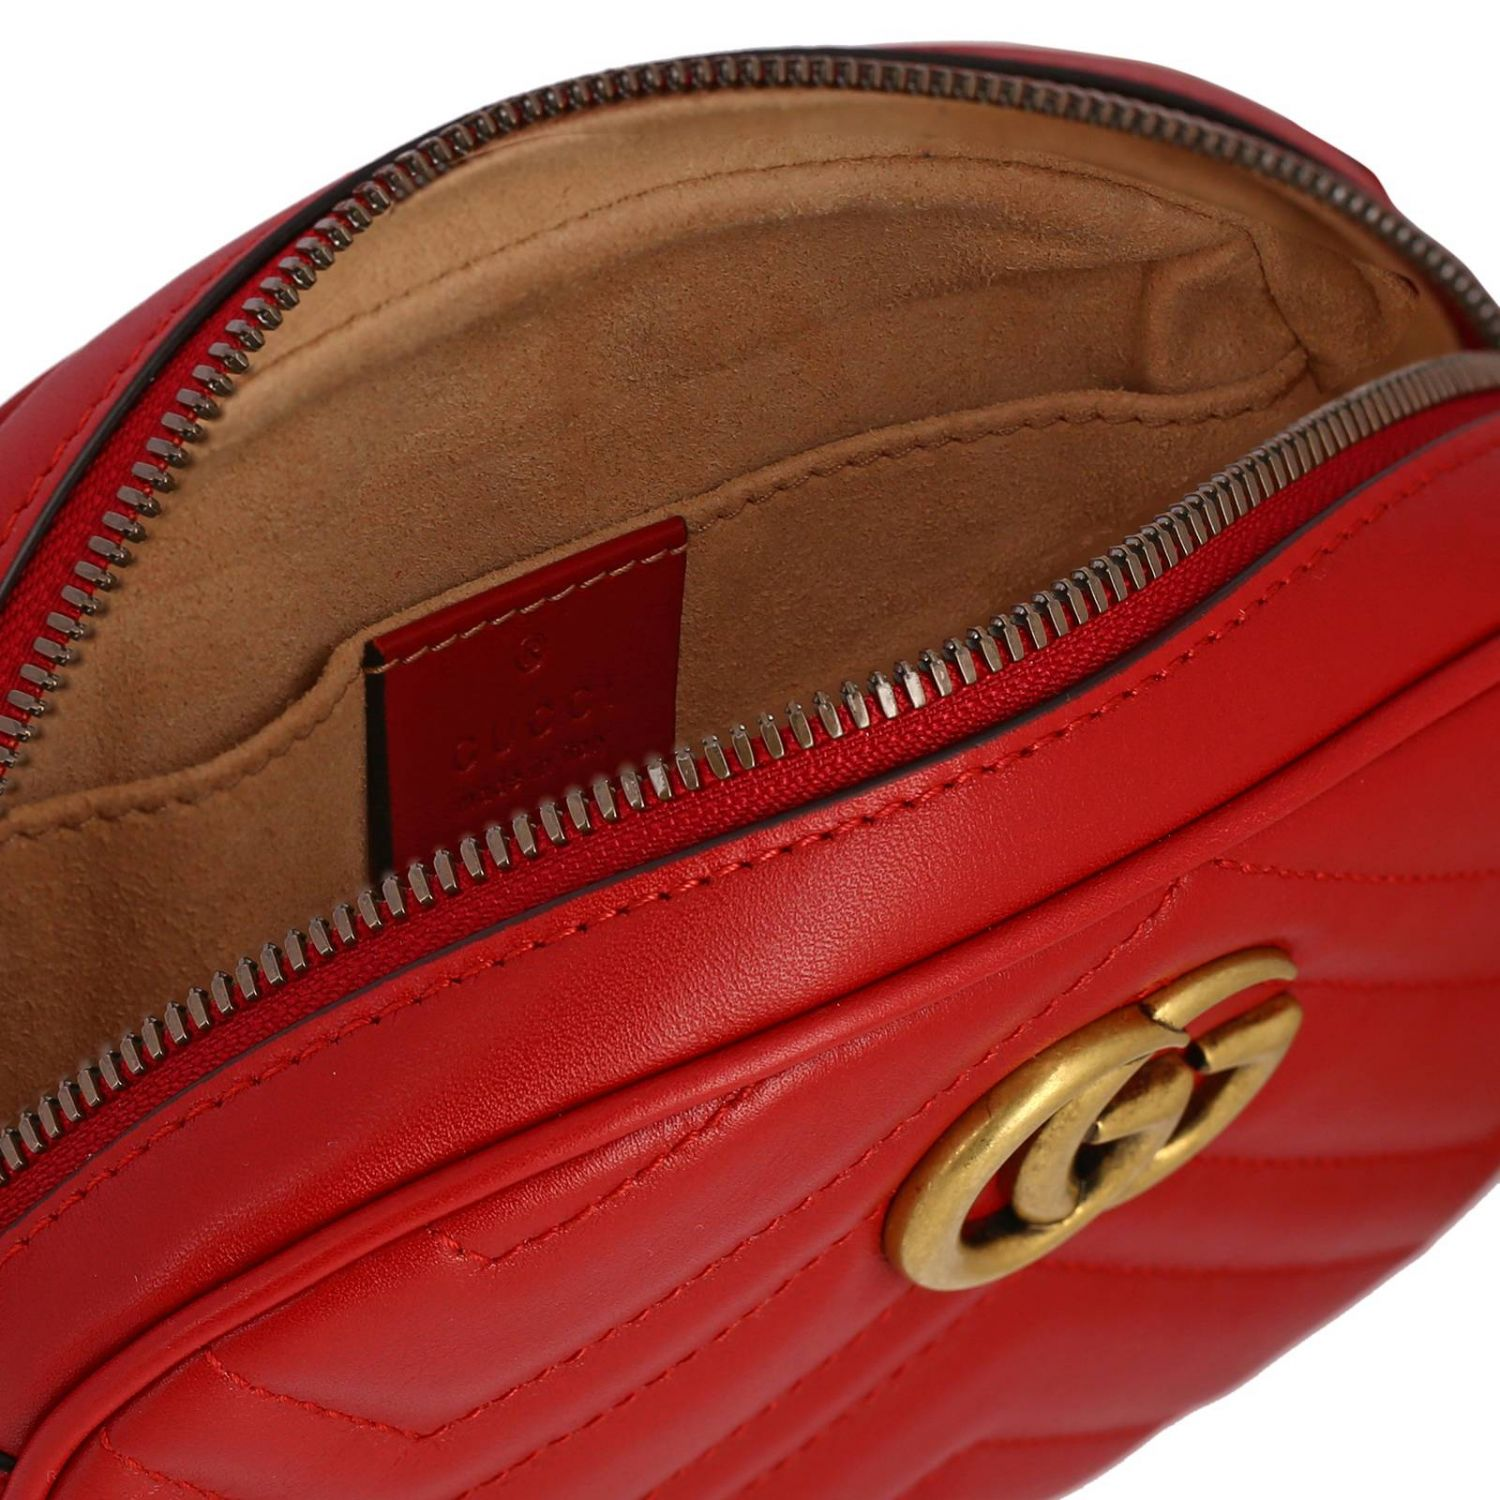 GG Marmont Gucci leather pouch in quilted chevron red 5